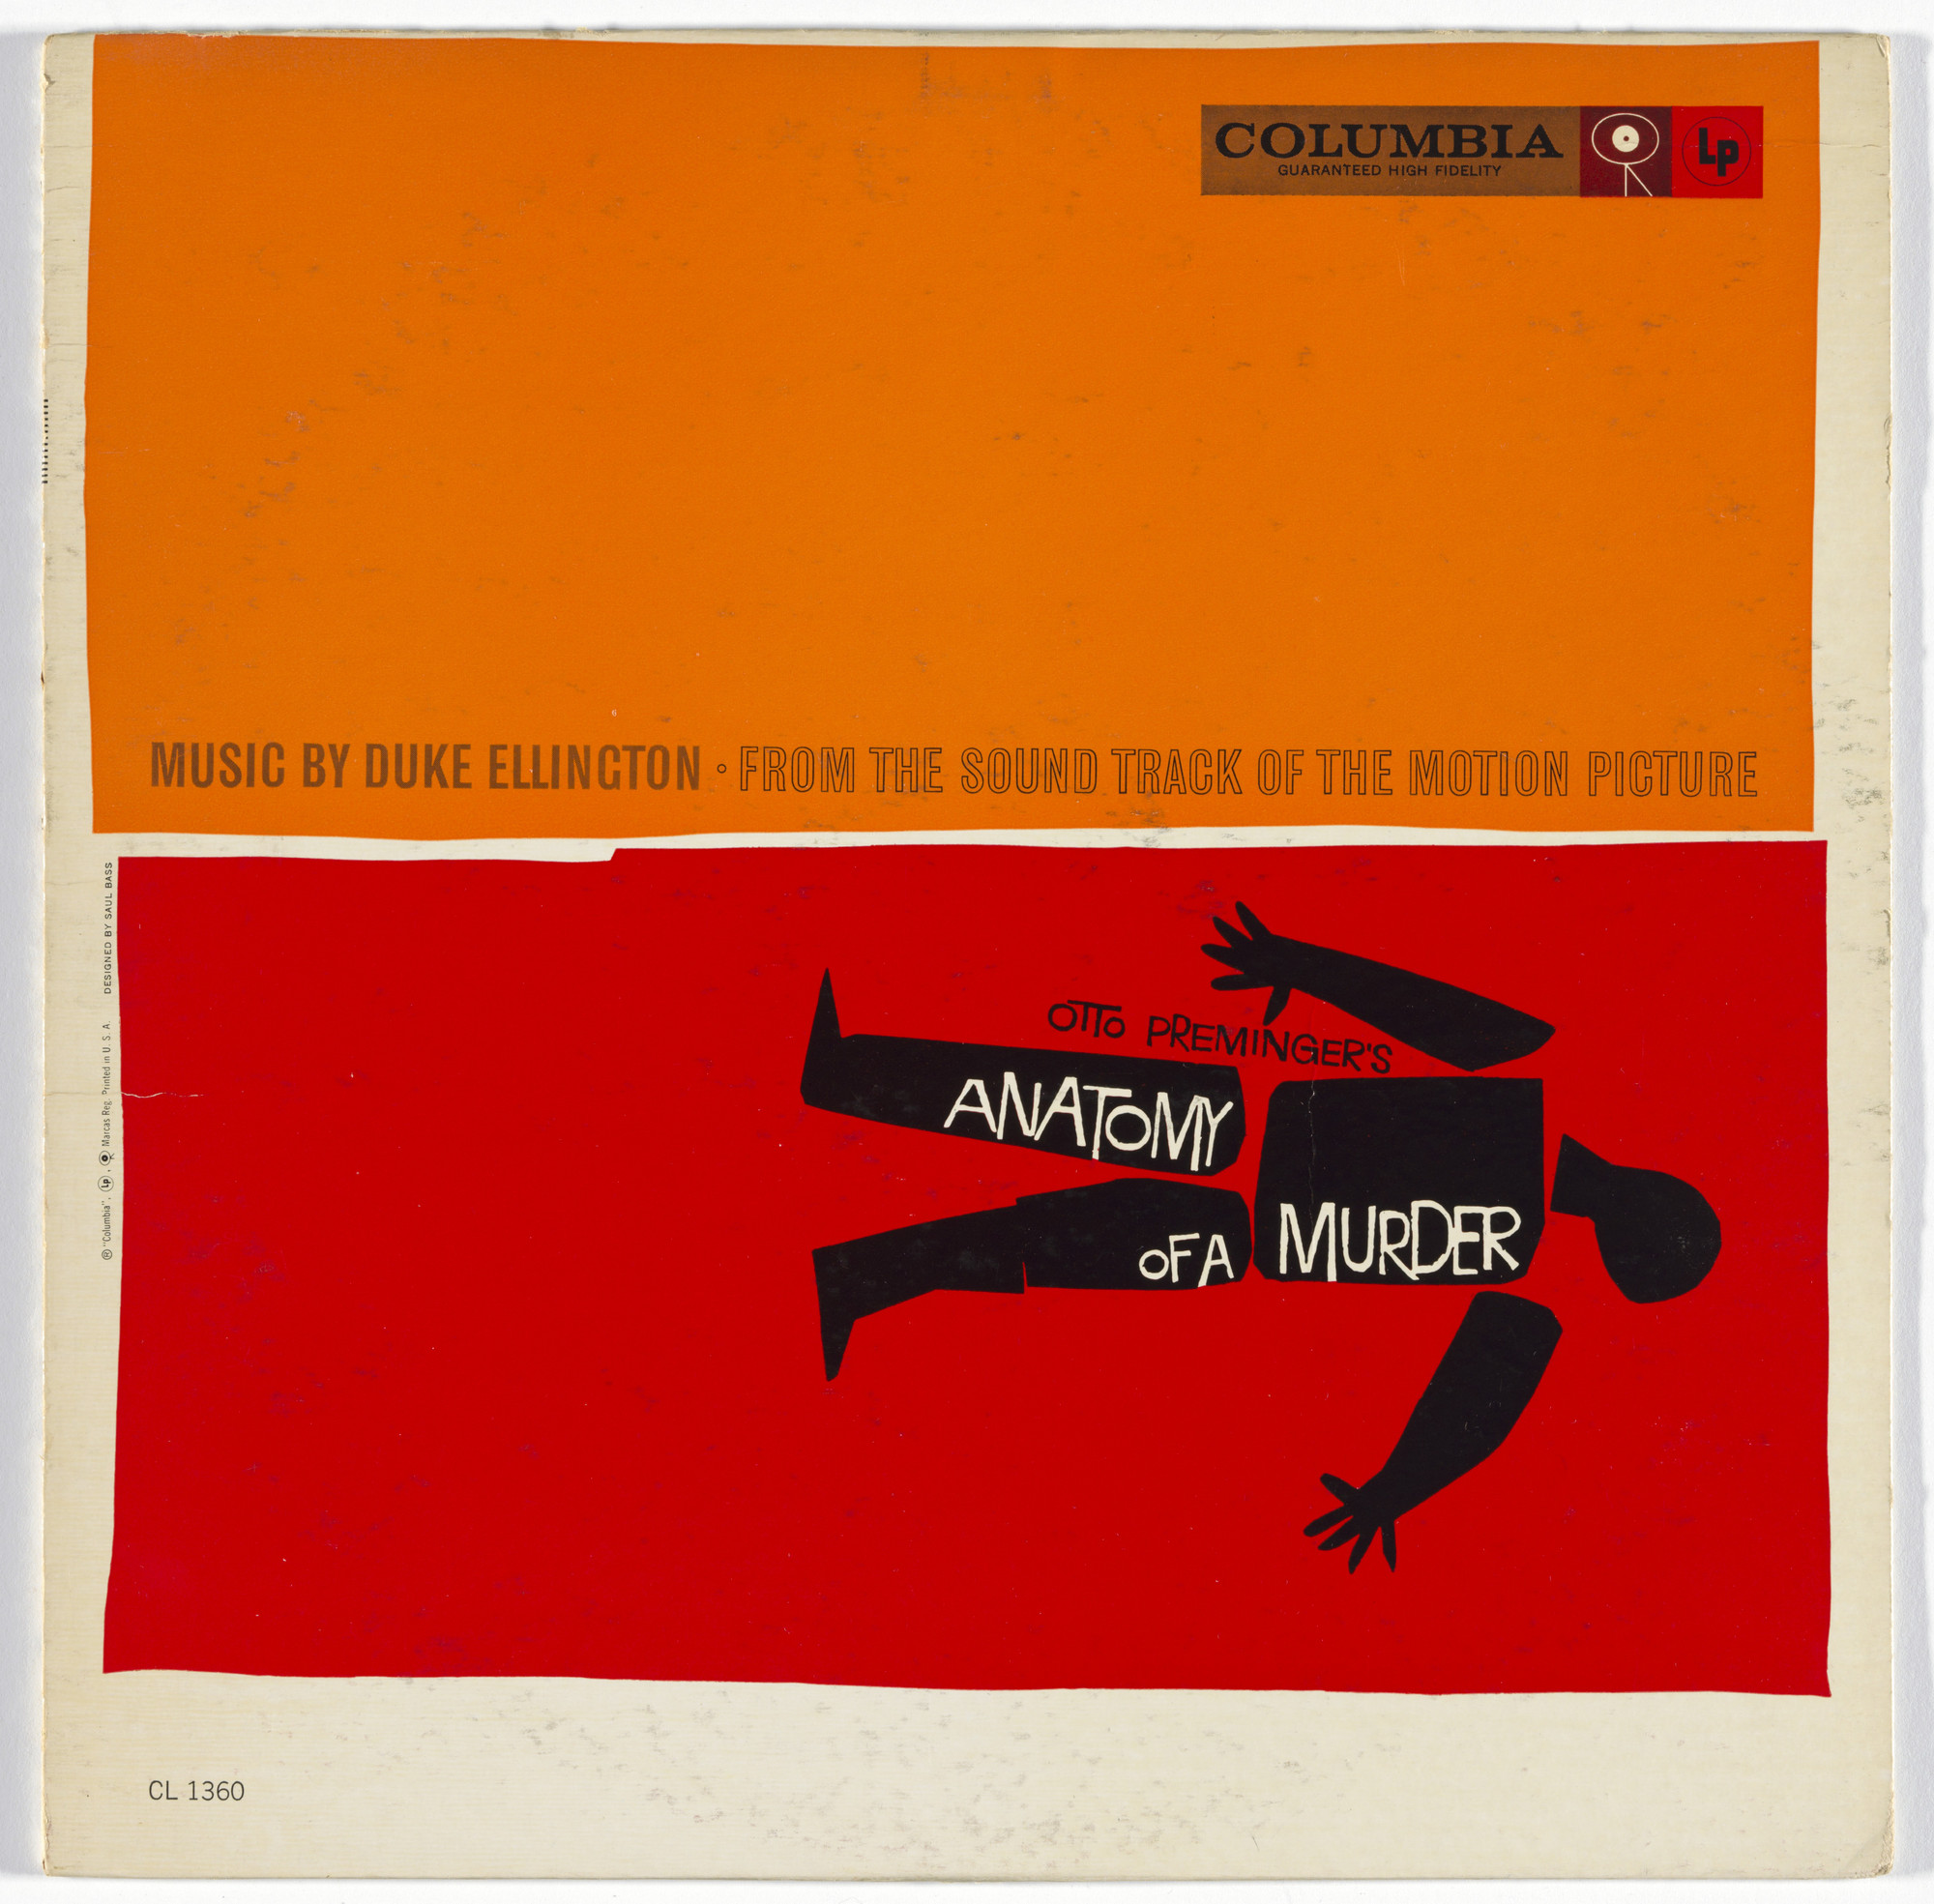 Saul Bass, Duke Ellington, Columbia Records. Album cover for Duke Ellington's music from the motion picture Anatomy of a Murder. 1959